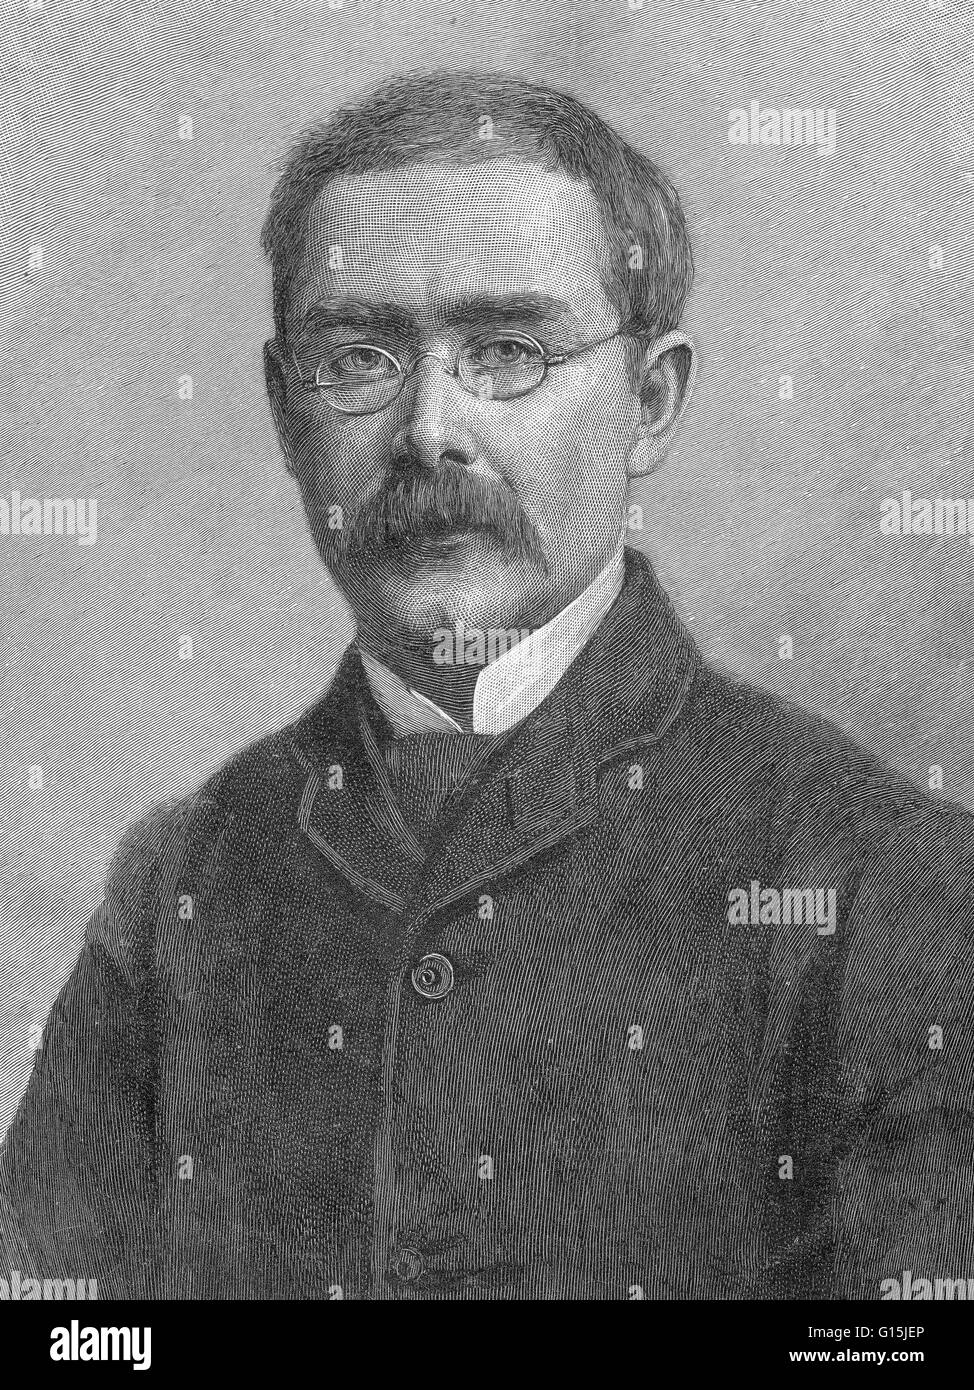 Joseph Rudyard Kipling (December 30 1865 - January 18, 1936) was an English short-story writer, poet, and novelist. Stock Photo